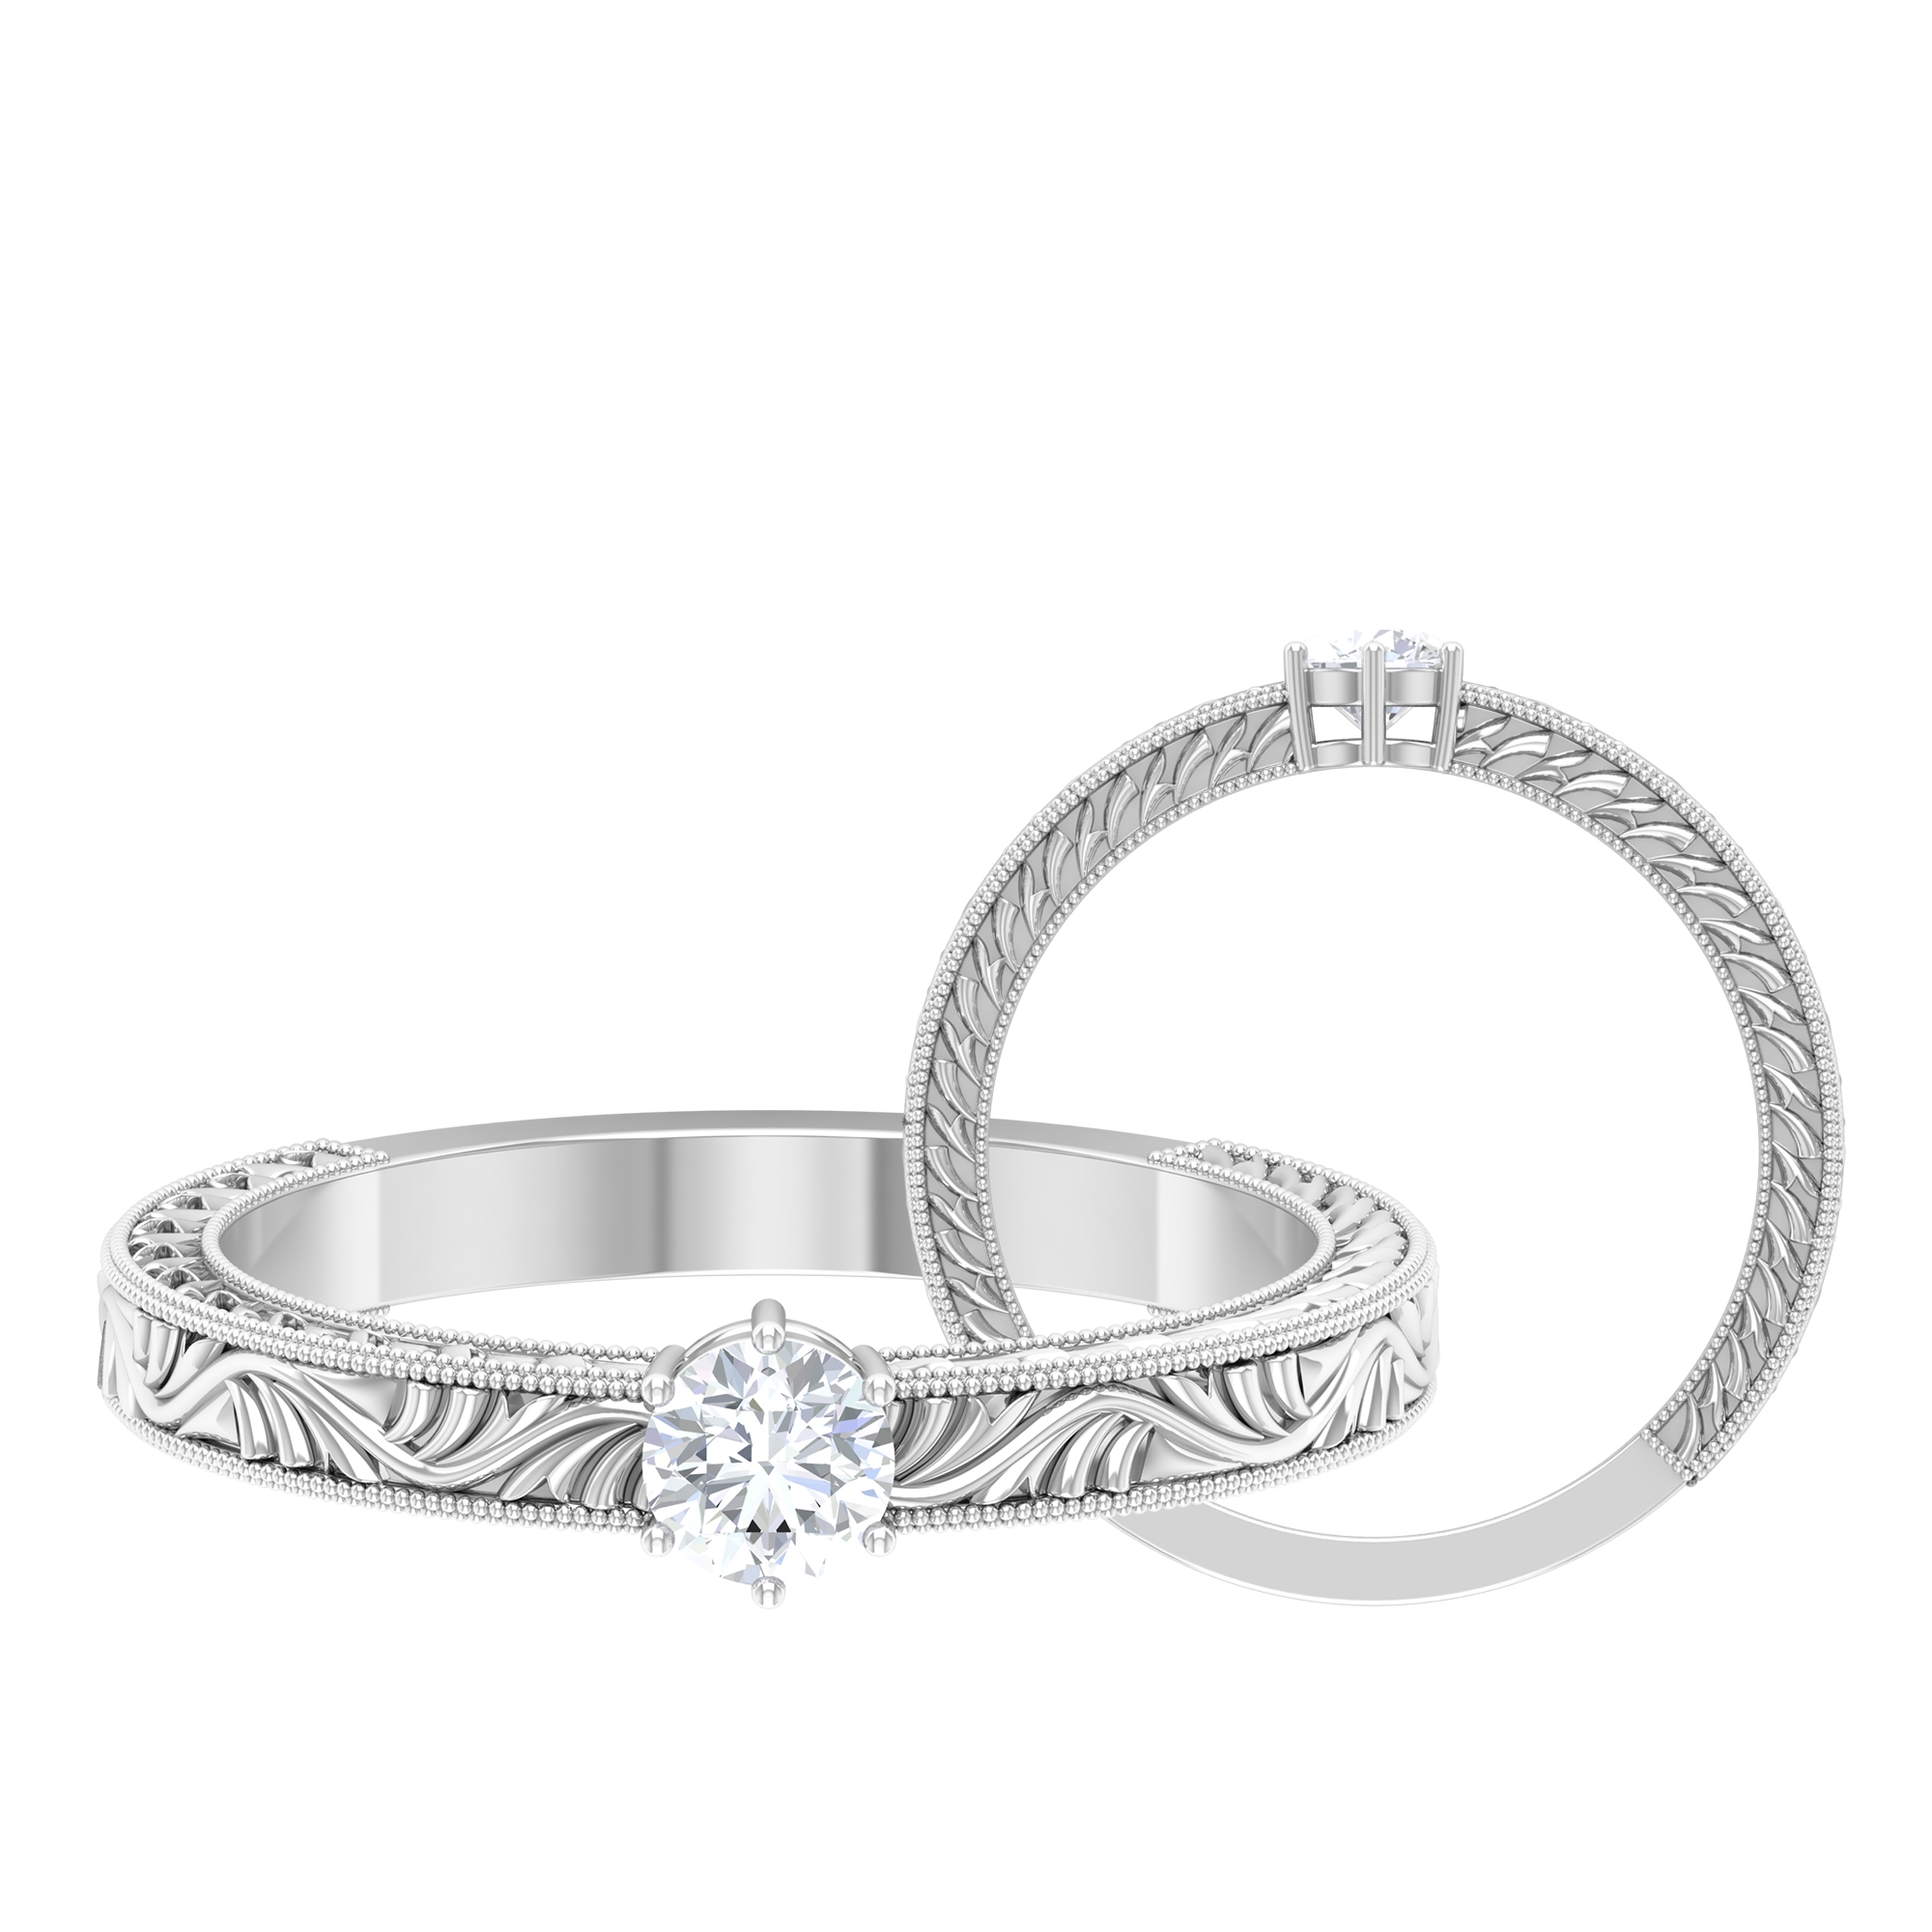 4 MM Round Cut Diamond Solitaire Ring in 6 Prong Setting with Engraved Details